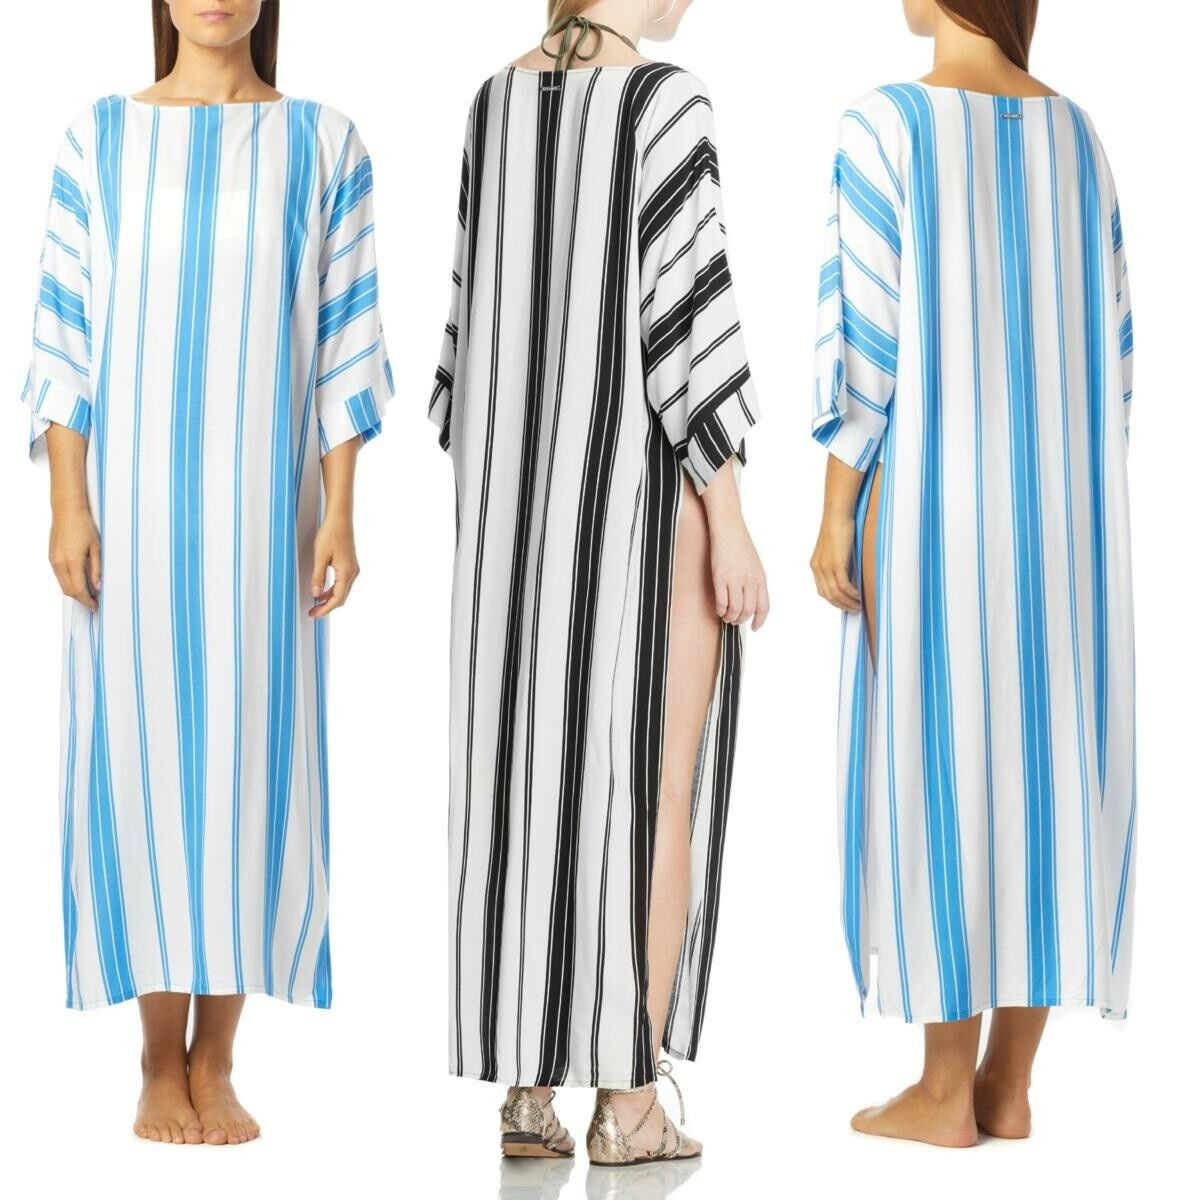 Vince Camuto Striped Caftan Cover-Up 531345-J